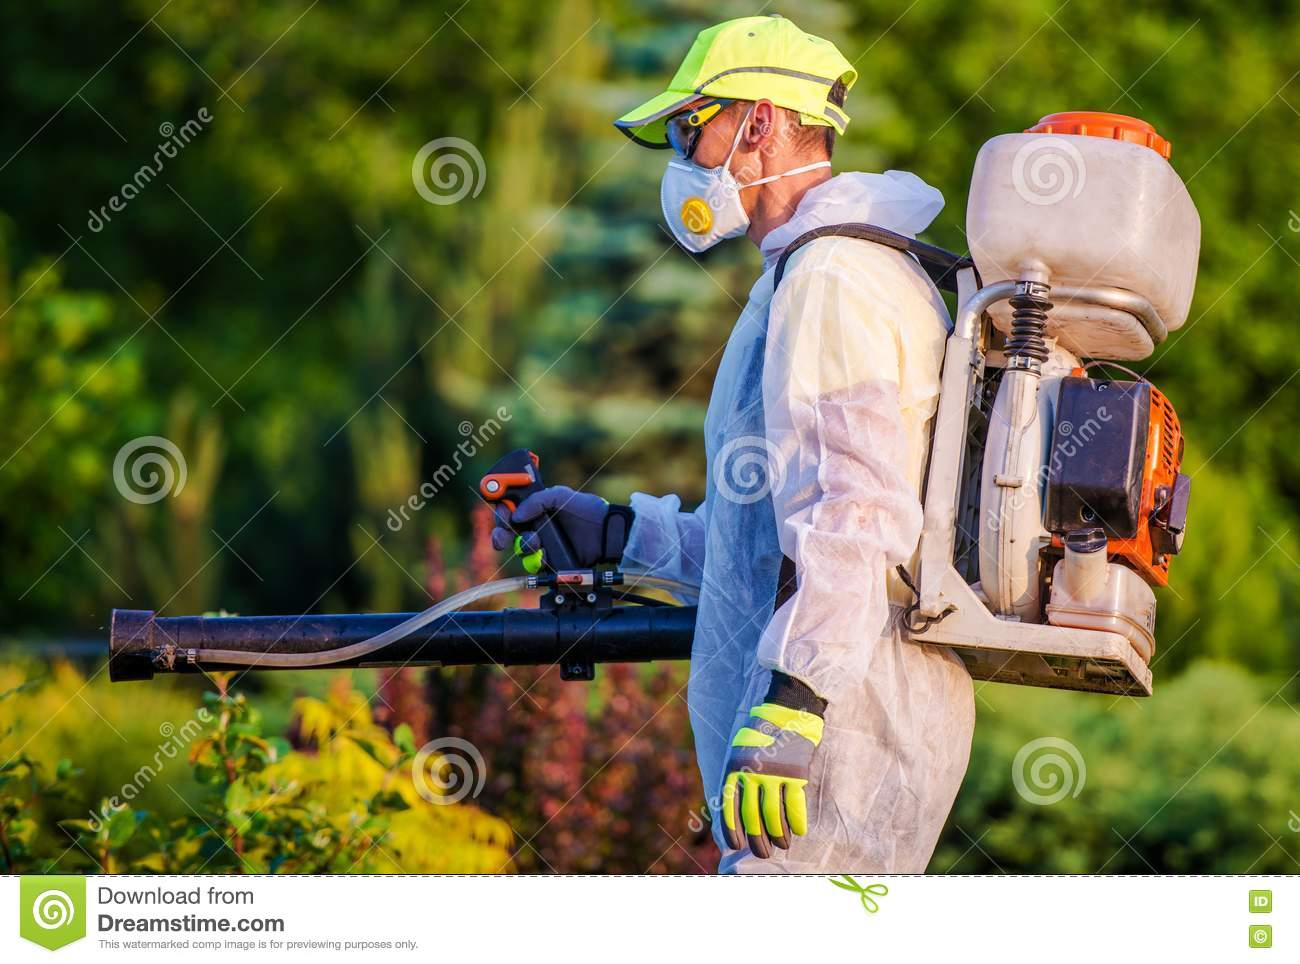 Garden Pest Control Service Stock Image - Image of ...